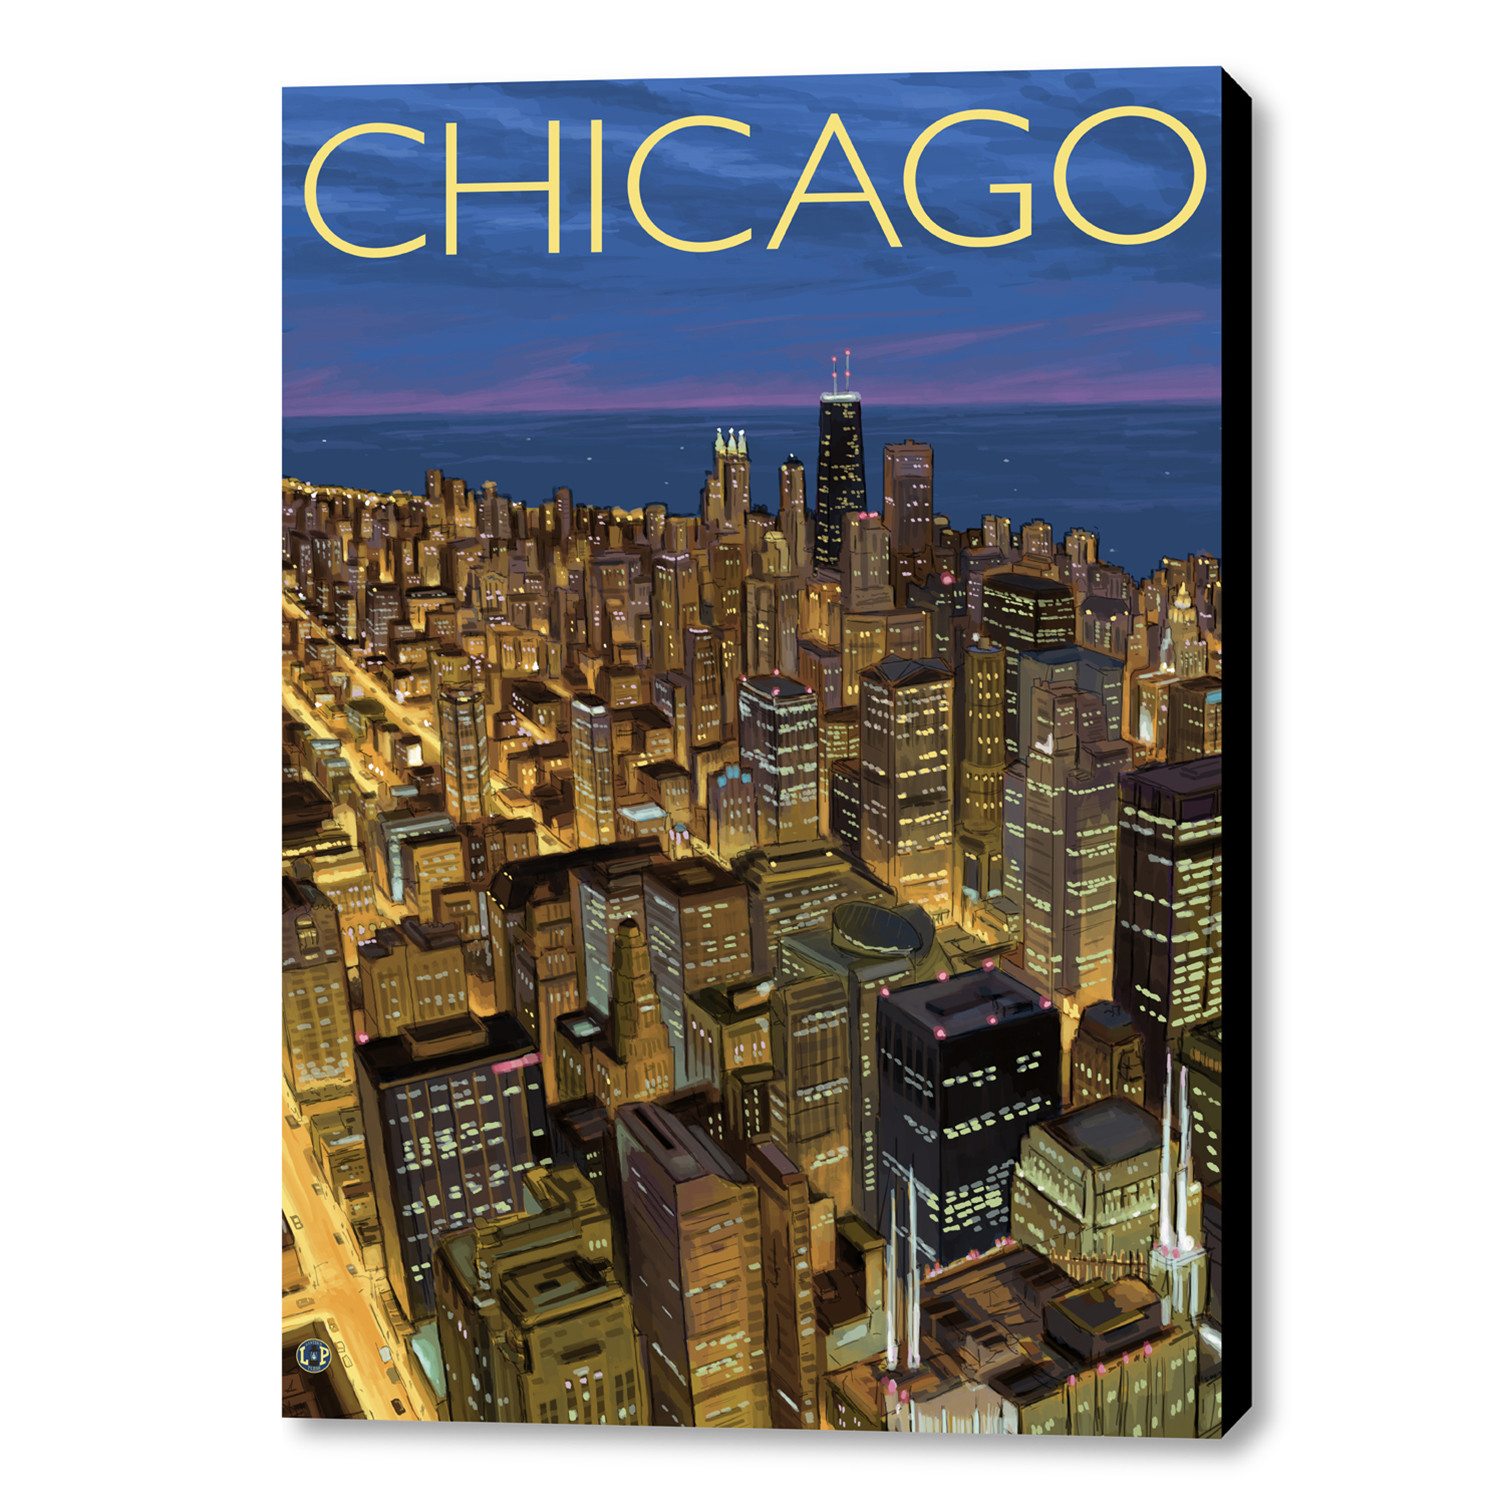 a history of chicago in american cities City of the century: the epic of chicago and the making of america [donald l  miller]  if you are interested in 19th century american history this book is for you.